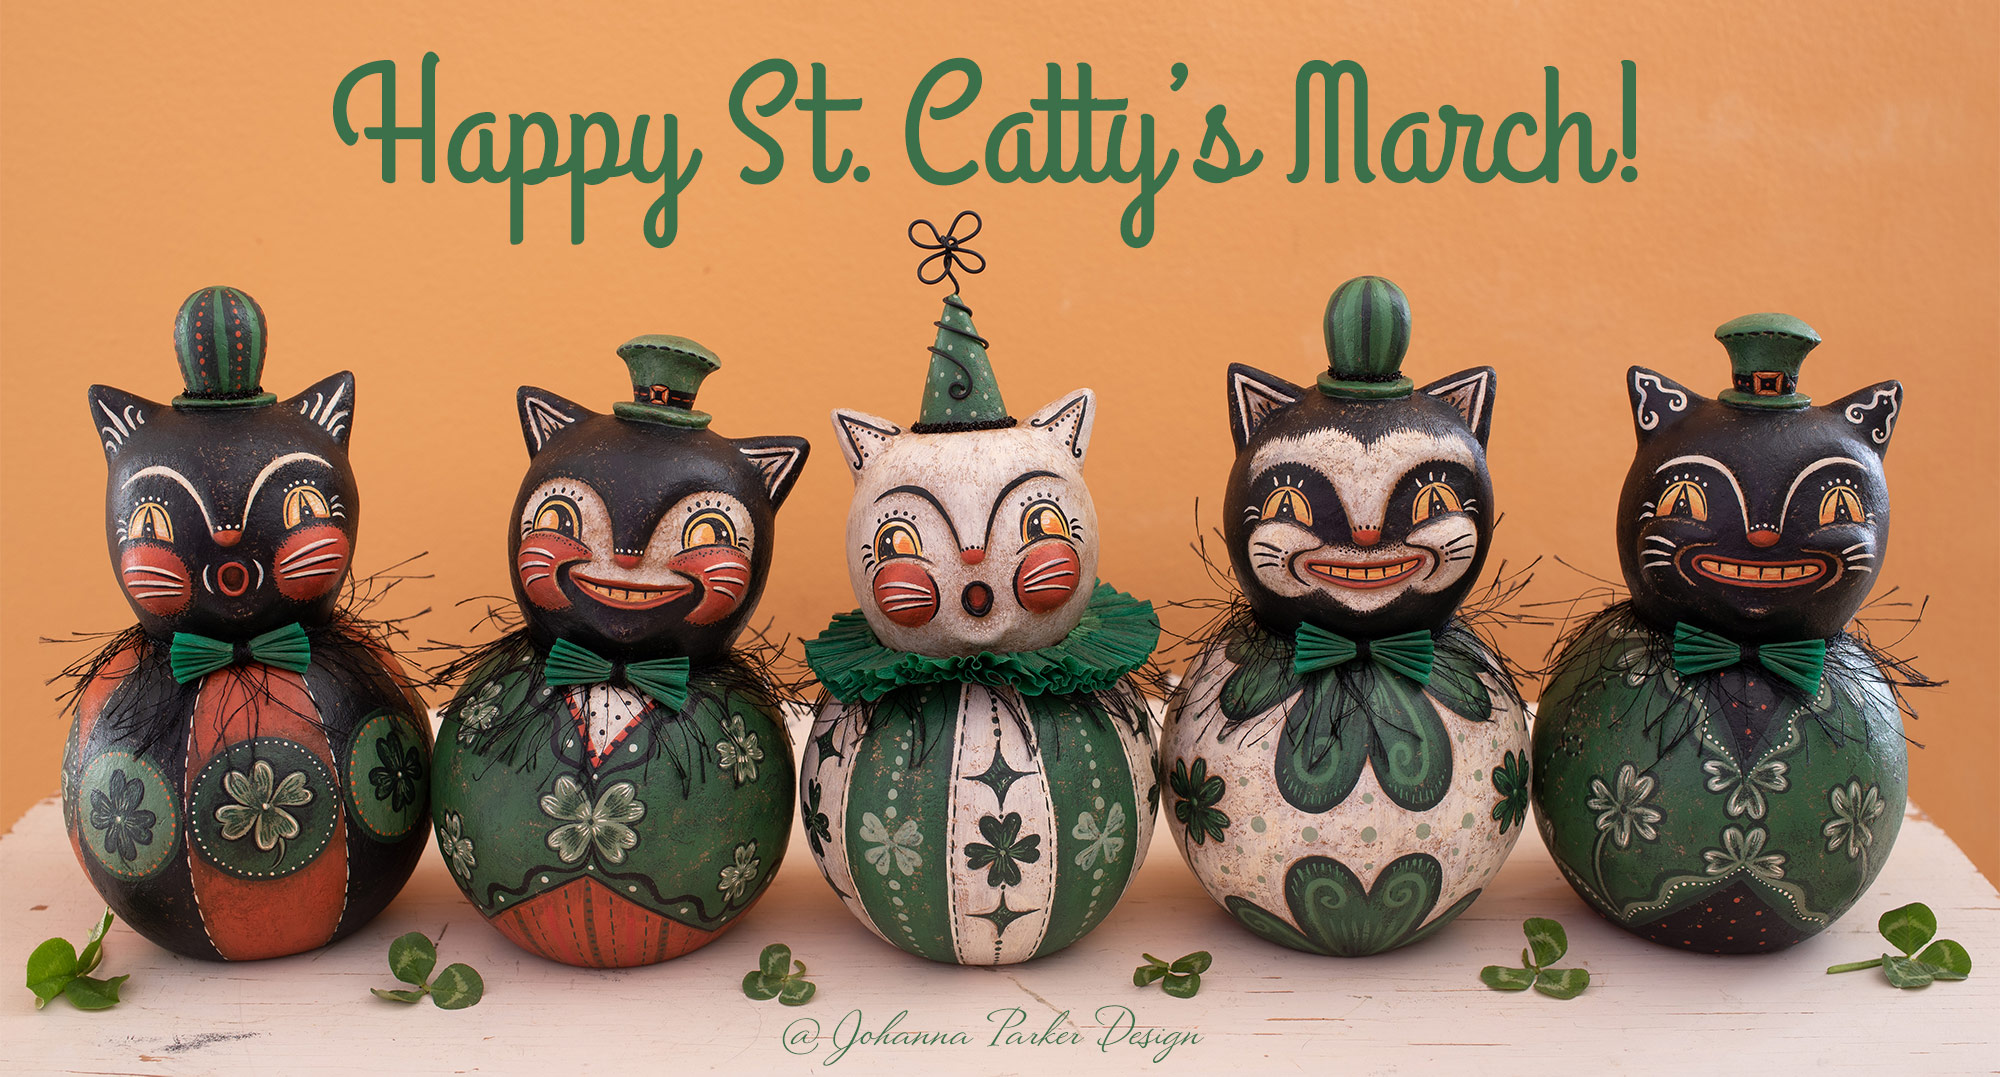 < BACK to the St. Catty's Collection